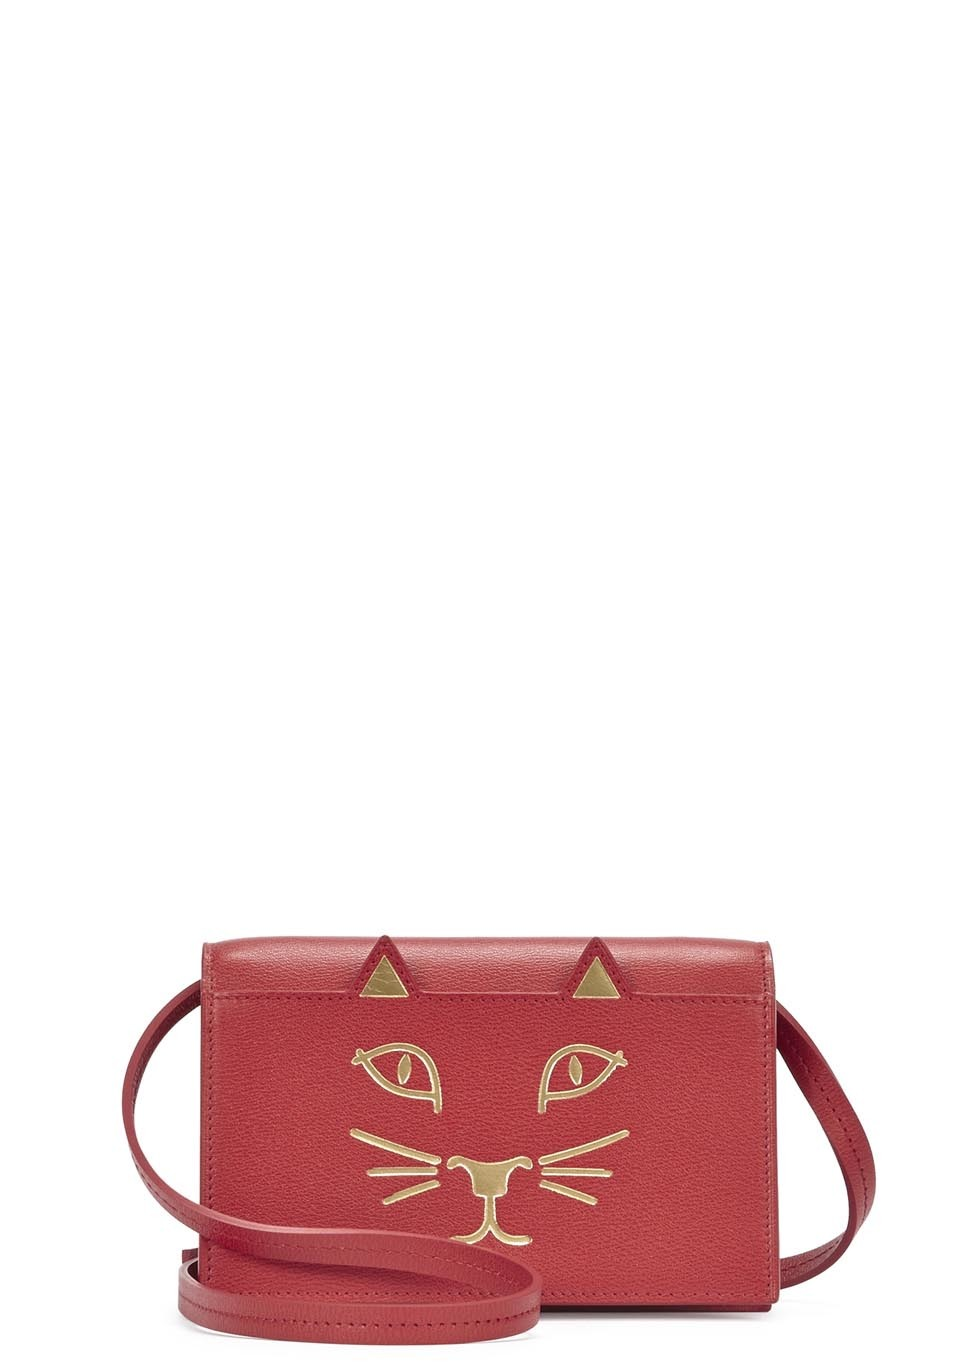 Mini Red Leather Cat Face Shoulder Bag - predominant colour: true red; secondary colour: gold; occasions: casual; type of pattern: standard; style: messenger; length: across body/long; size: mini; material: leather; finish: plain; pattern: patterned/print; season: s/s 2015